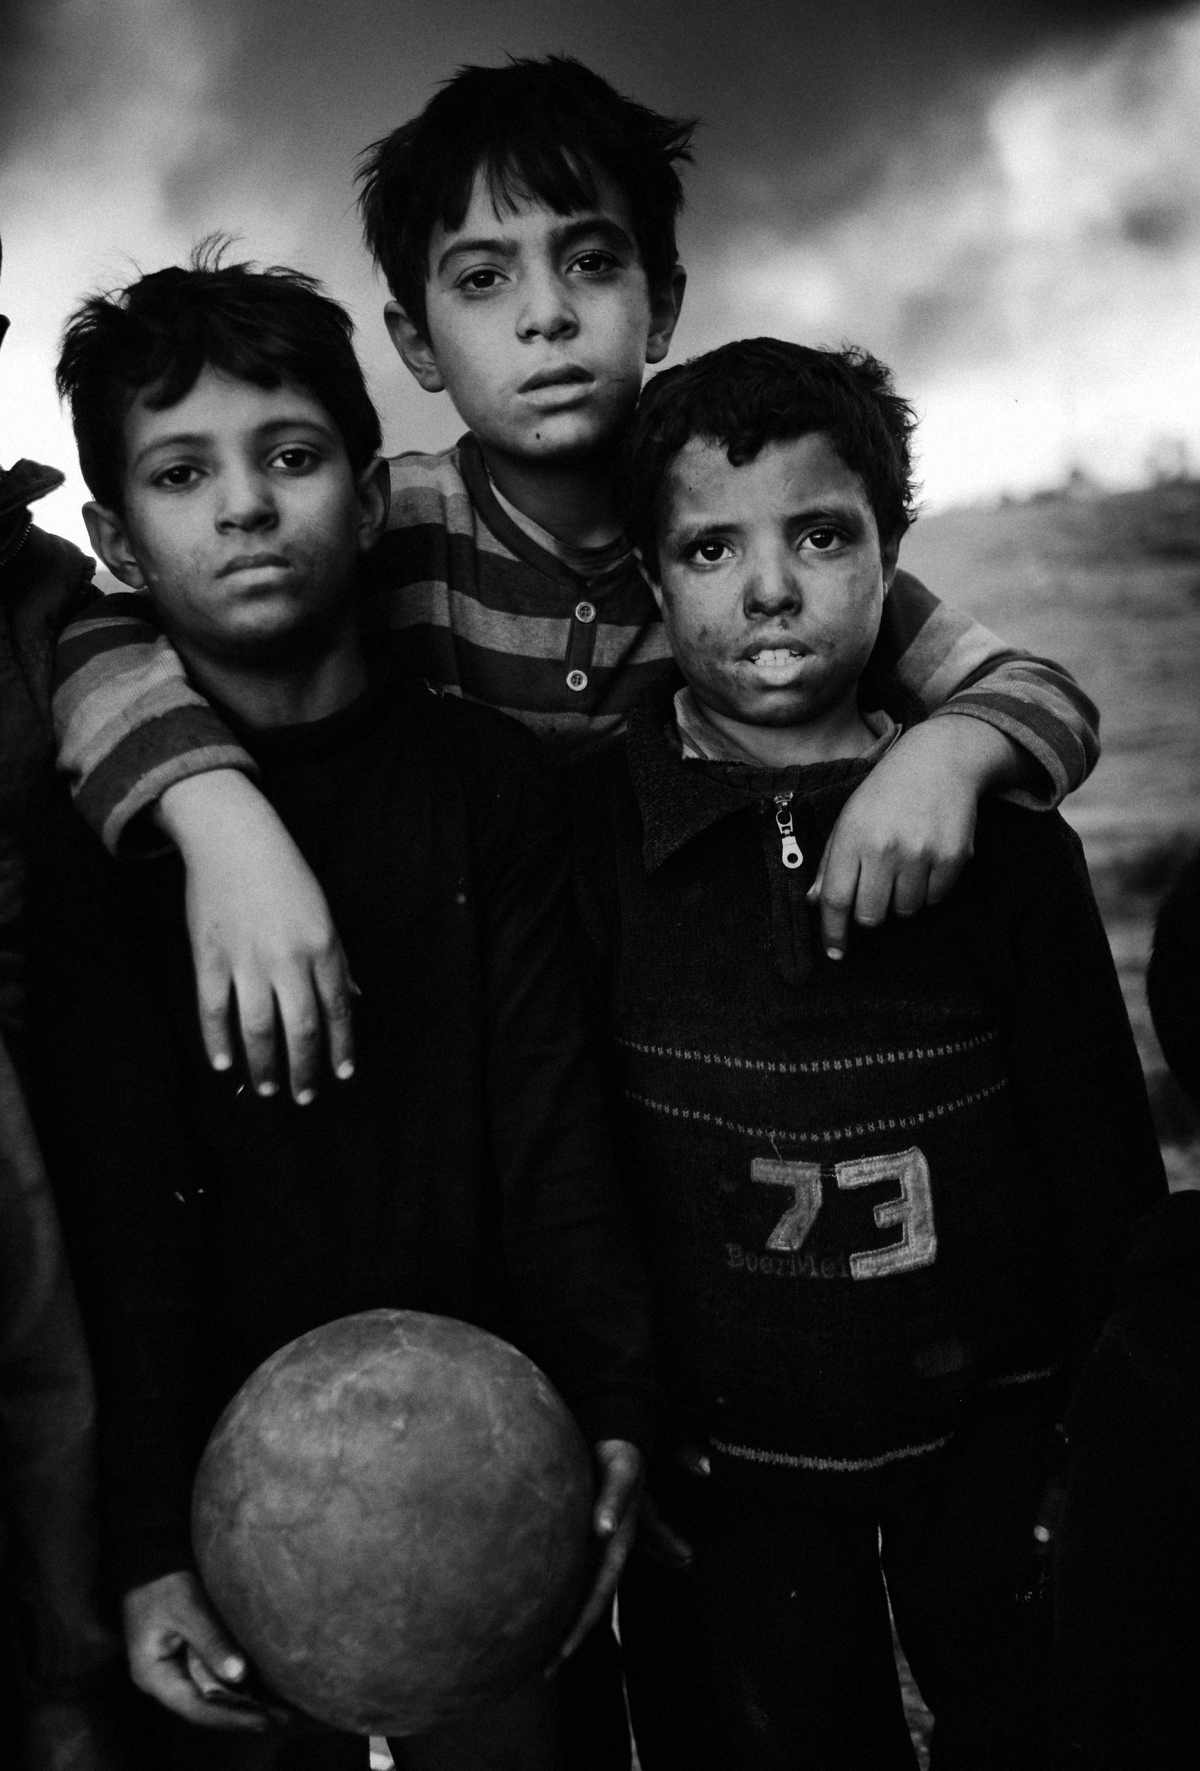 three boys at the football pitch in the city Qayyara, south of Mosul. The dense plumes of smoke are emanating from multiple sites about 30 miles (50 km) south of Mosul. The fires were deliberately set by ISIS militants before abandoning the city. The smoke has been persistent over the past three months, blotting out the sun hours before nightfall and creating major health issue for mainly the children in the area.